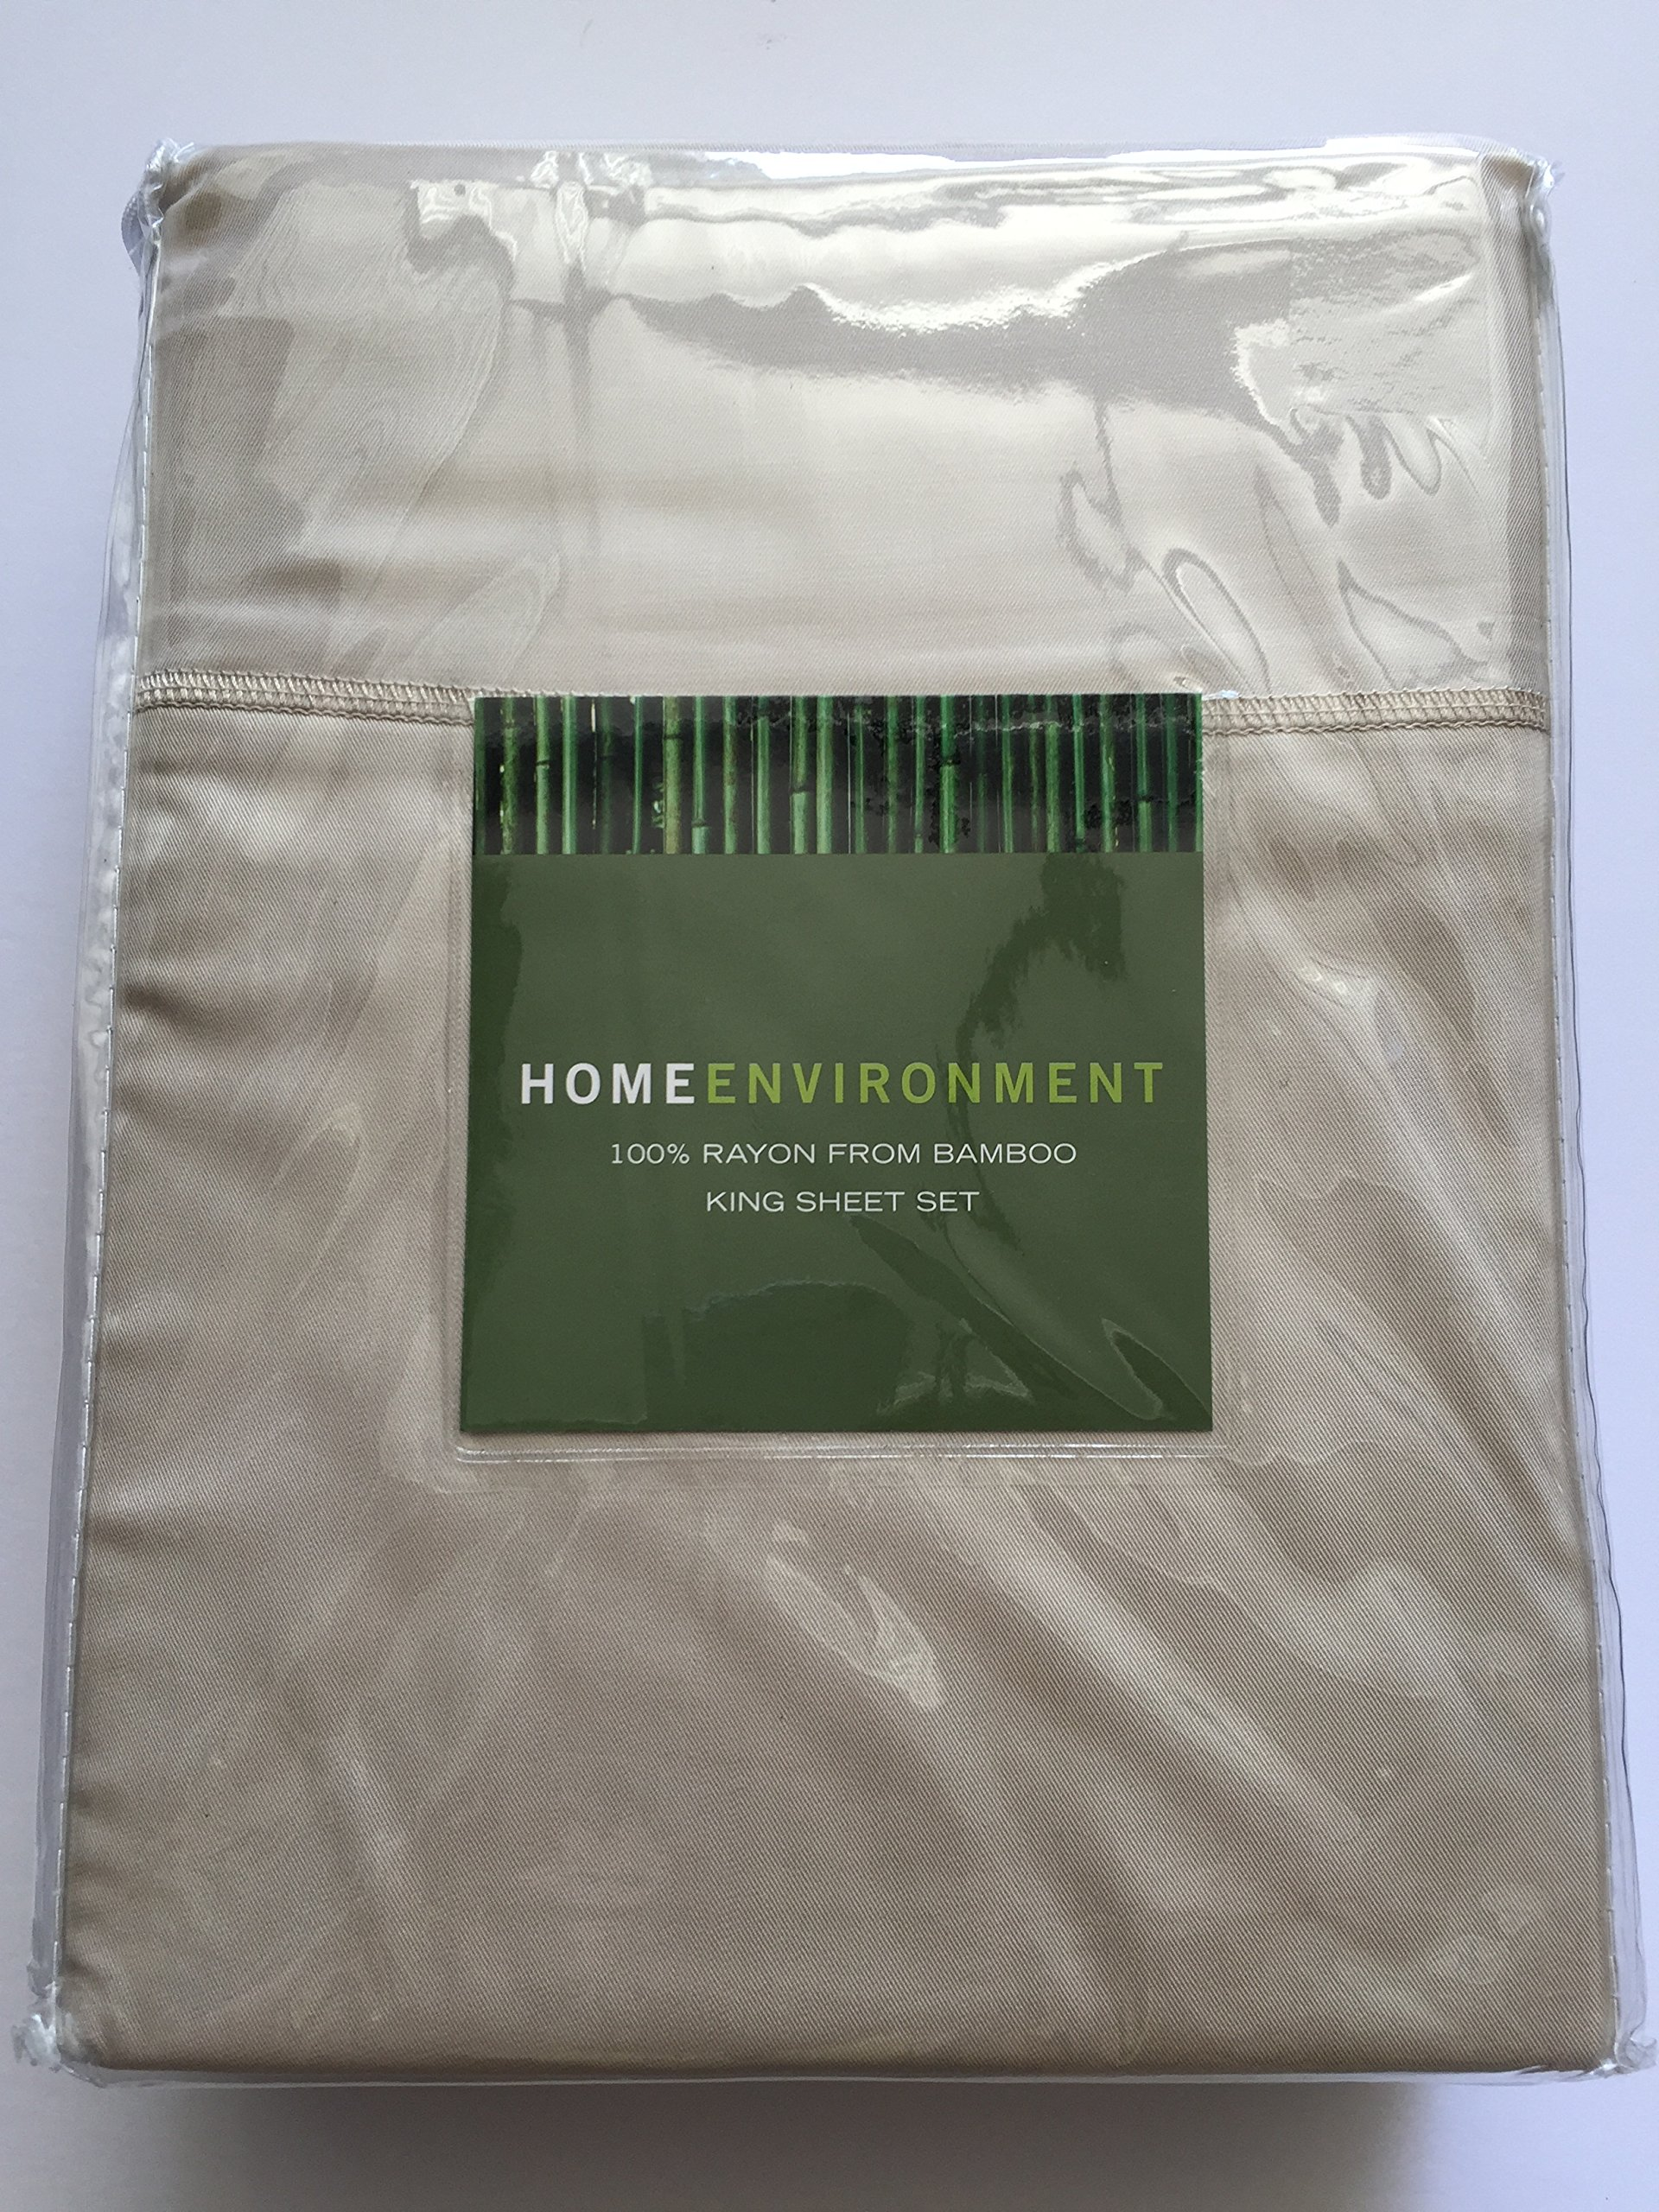 Home Environment King Sheet Set, Rayon from Bamboo, Beige Tan Taupe